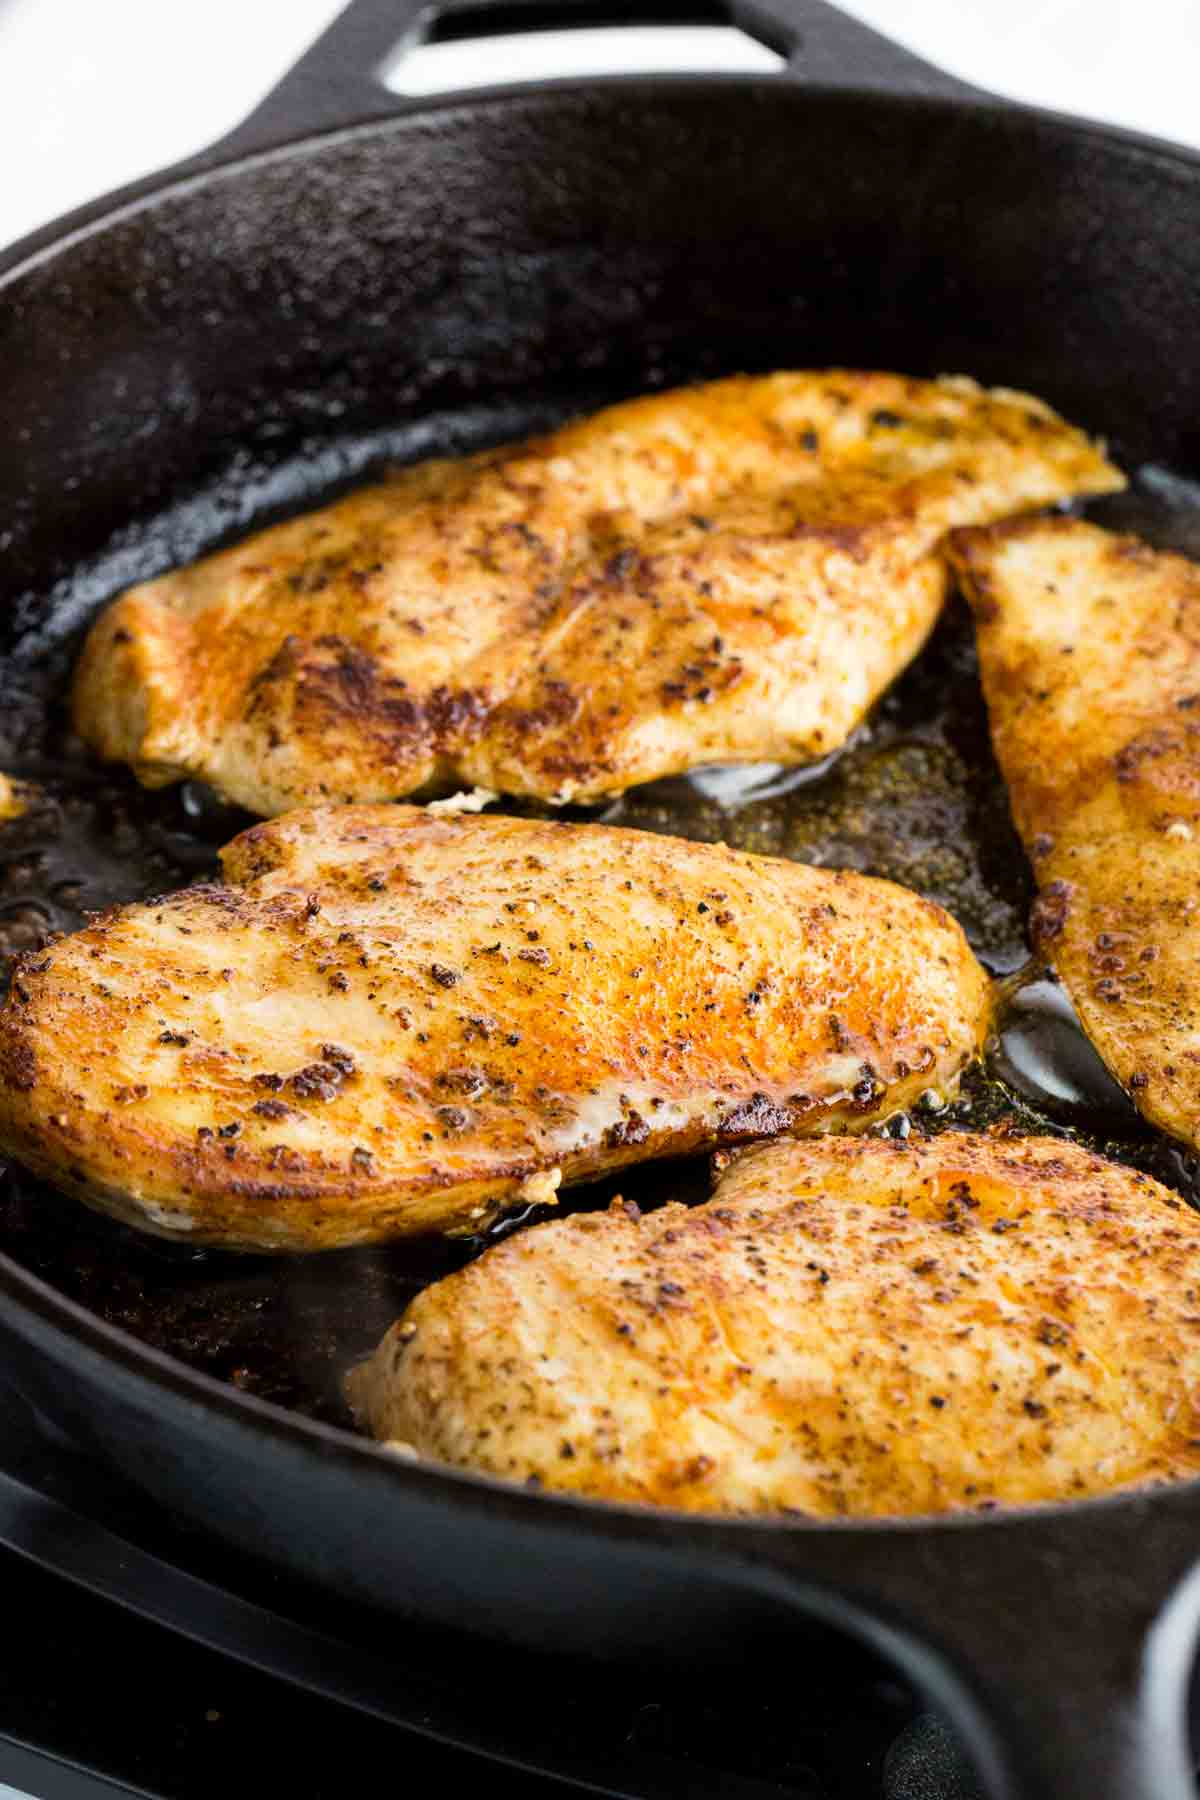 Four seasoned chicken breasts cooking in a cast iron skillet